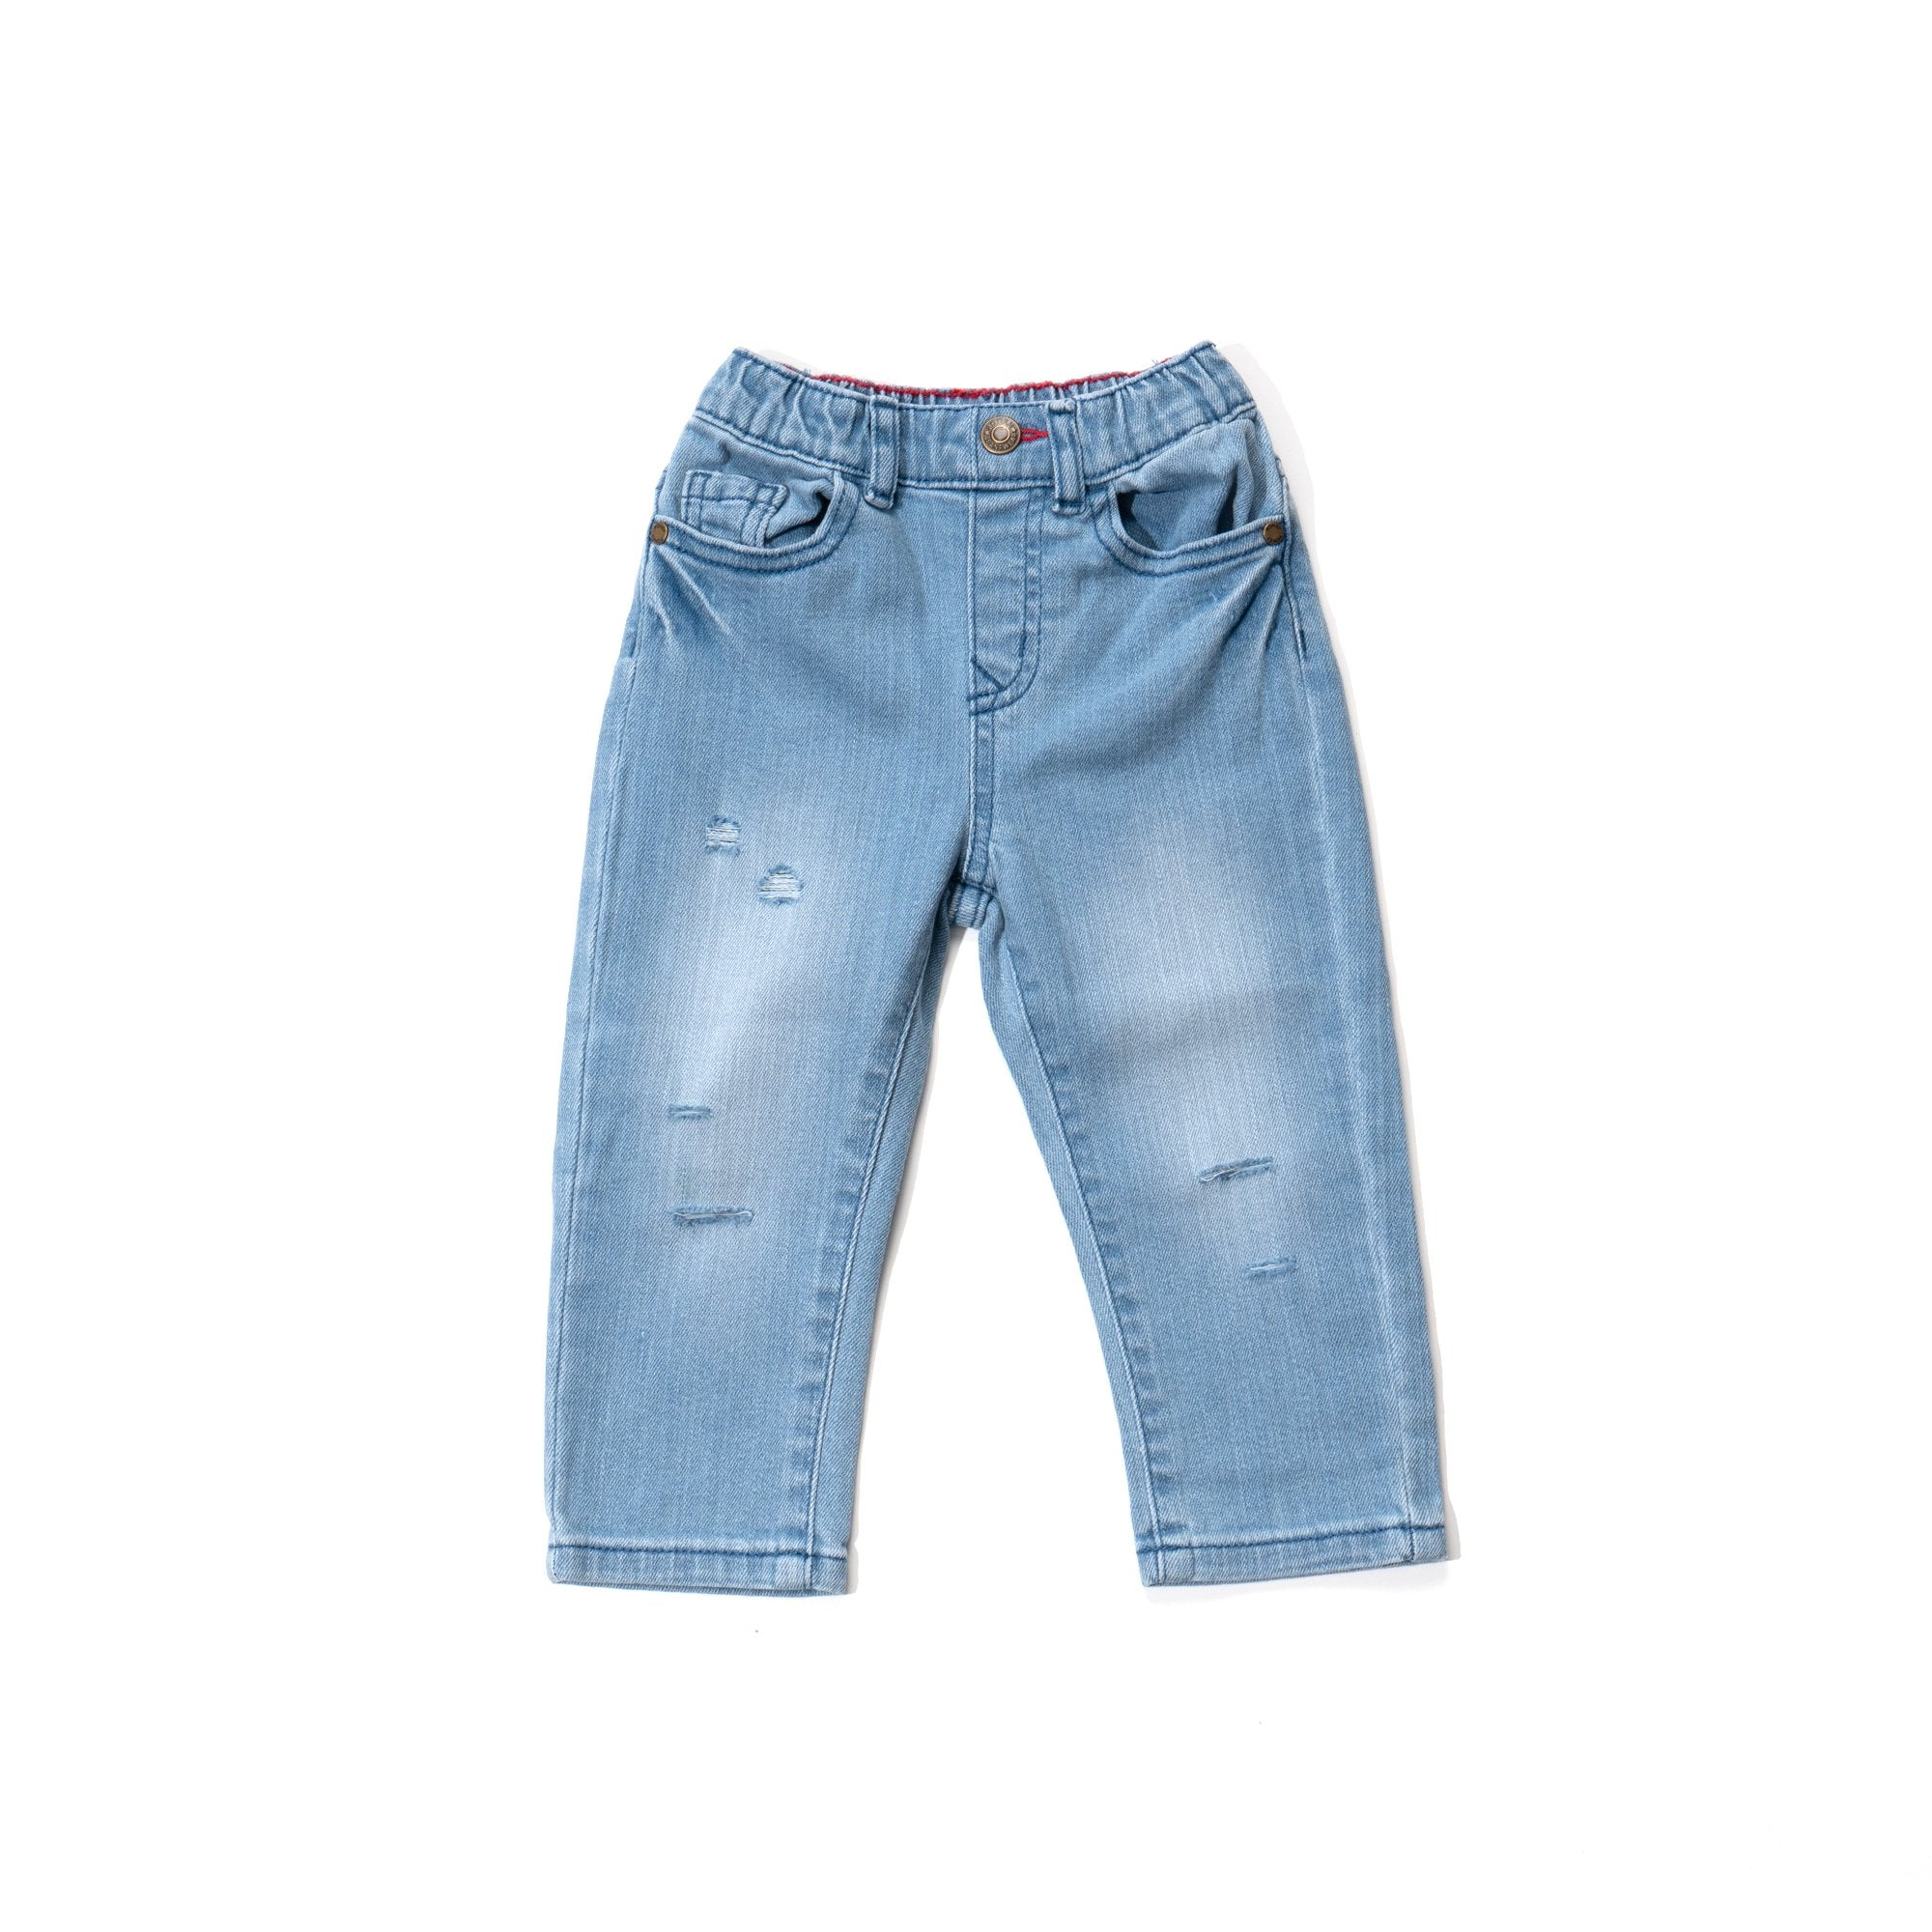 Poney Boys Jeans 8169 (6mths-12yrs)